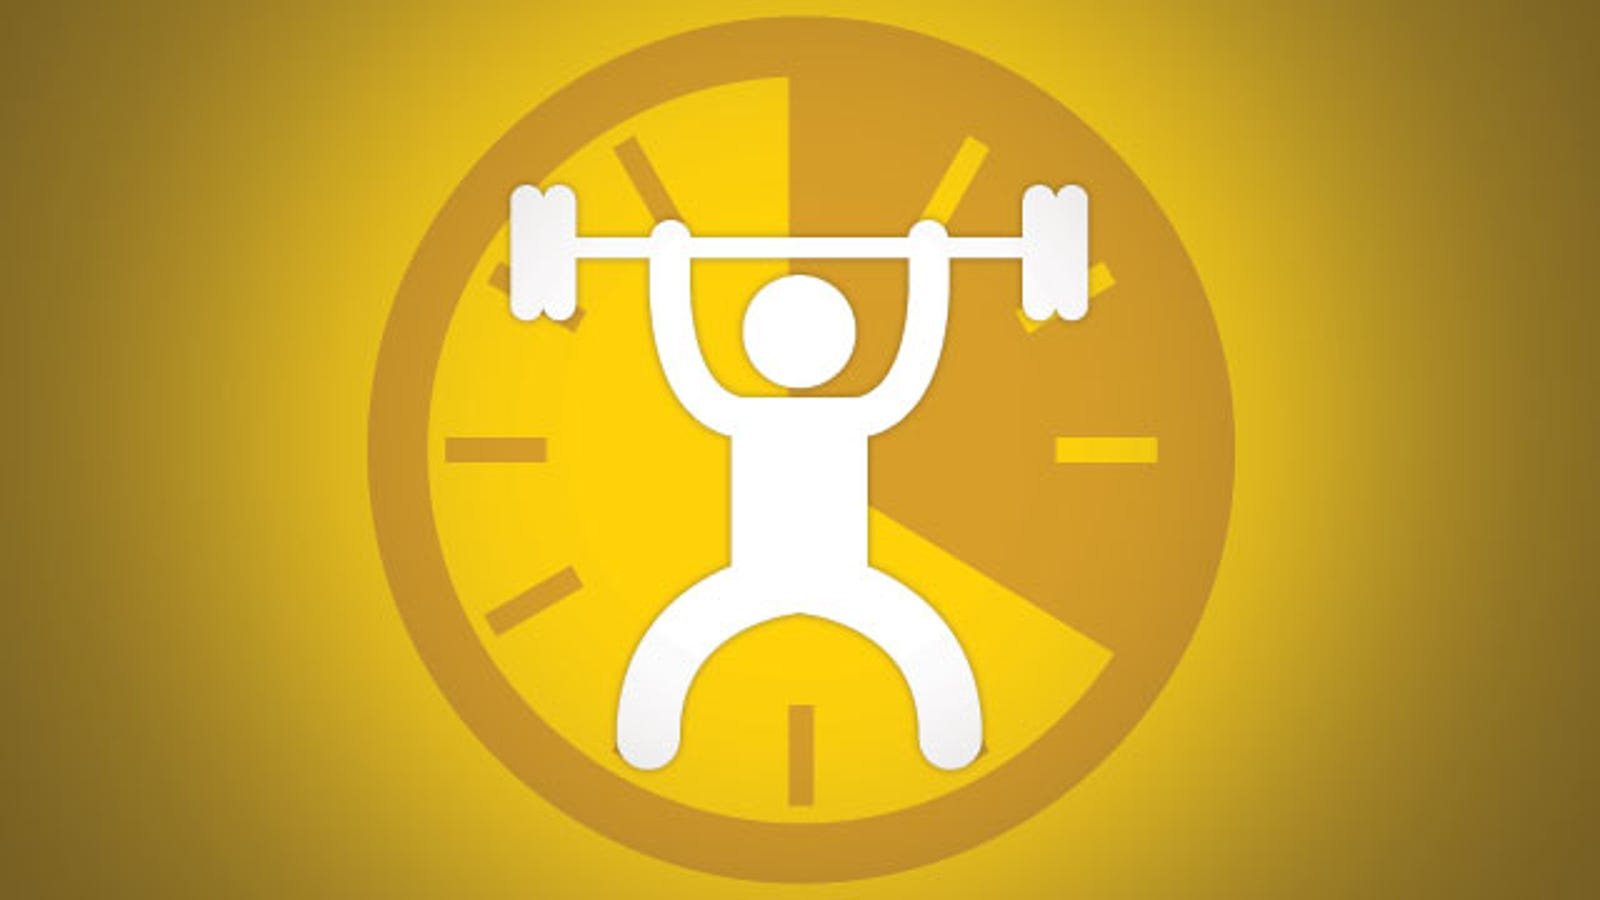 a 20 minute daily exercise plan for people too busy to work out